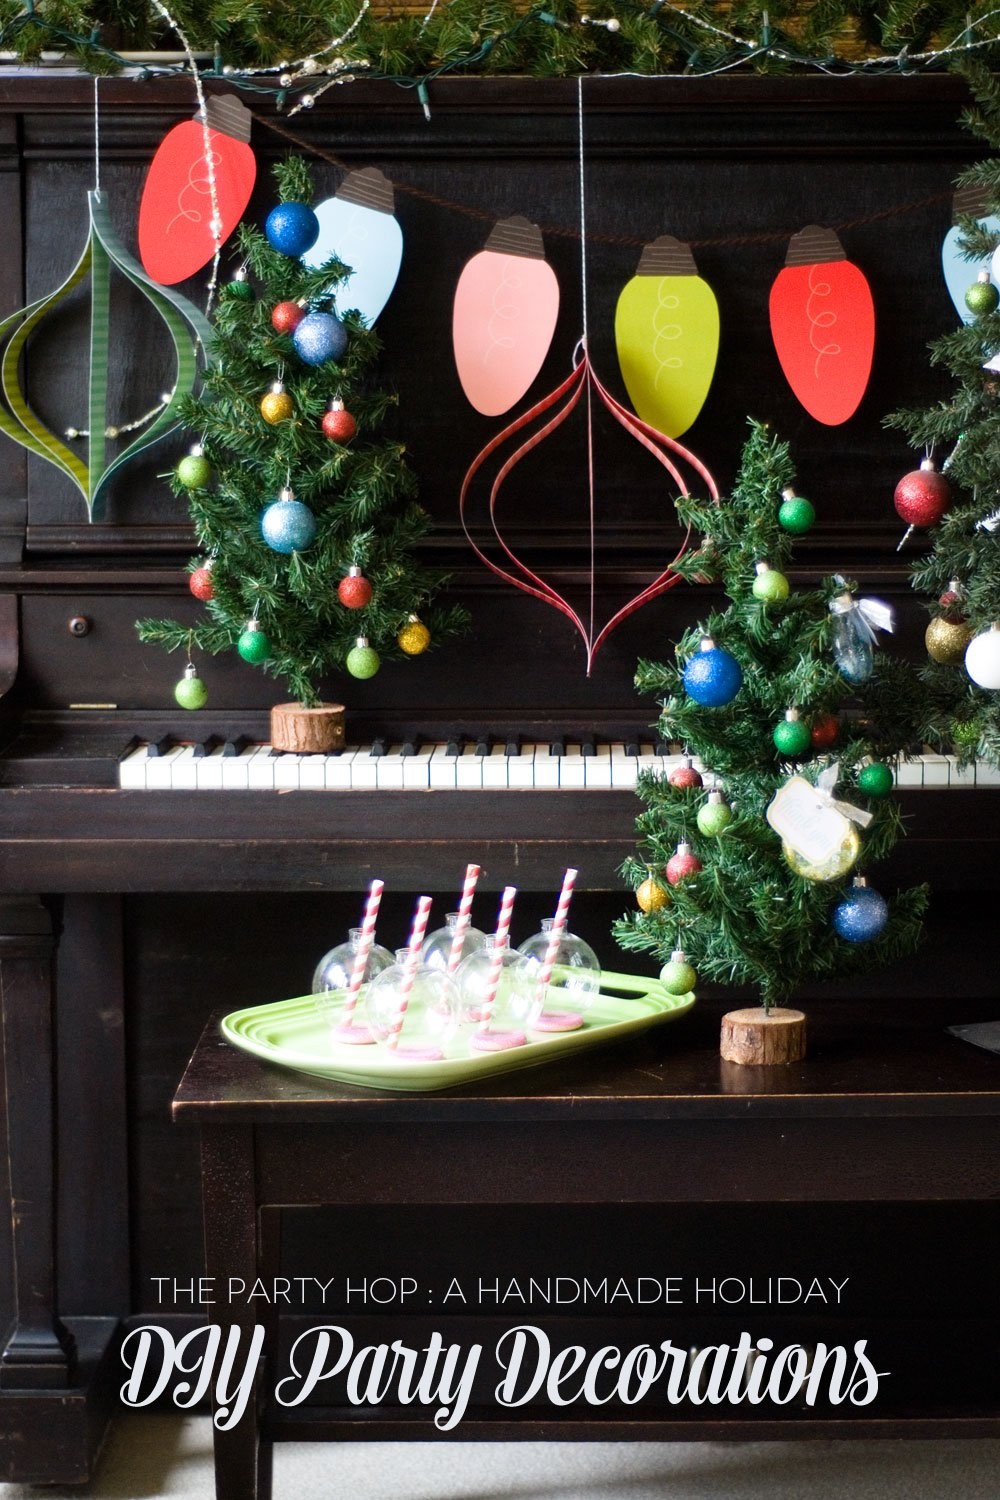 Handmade Holiday - DIY Party Decorations - Frog Prince Paperie